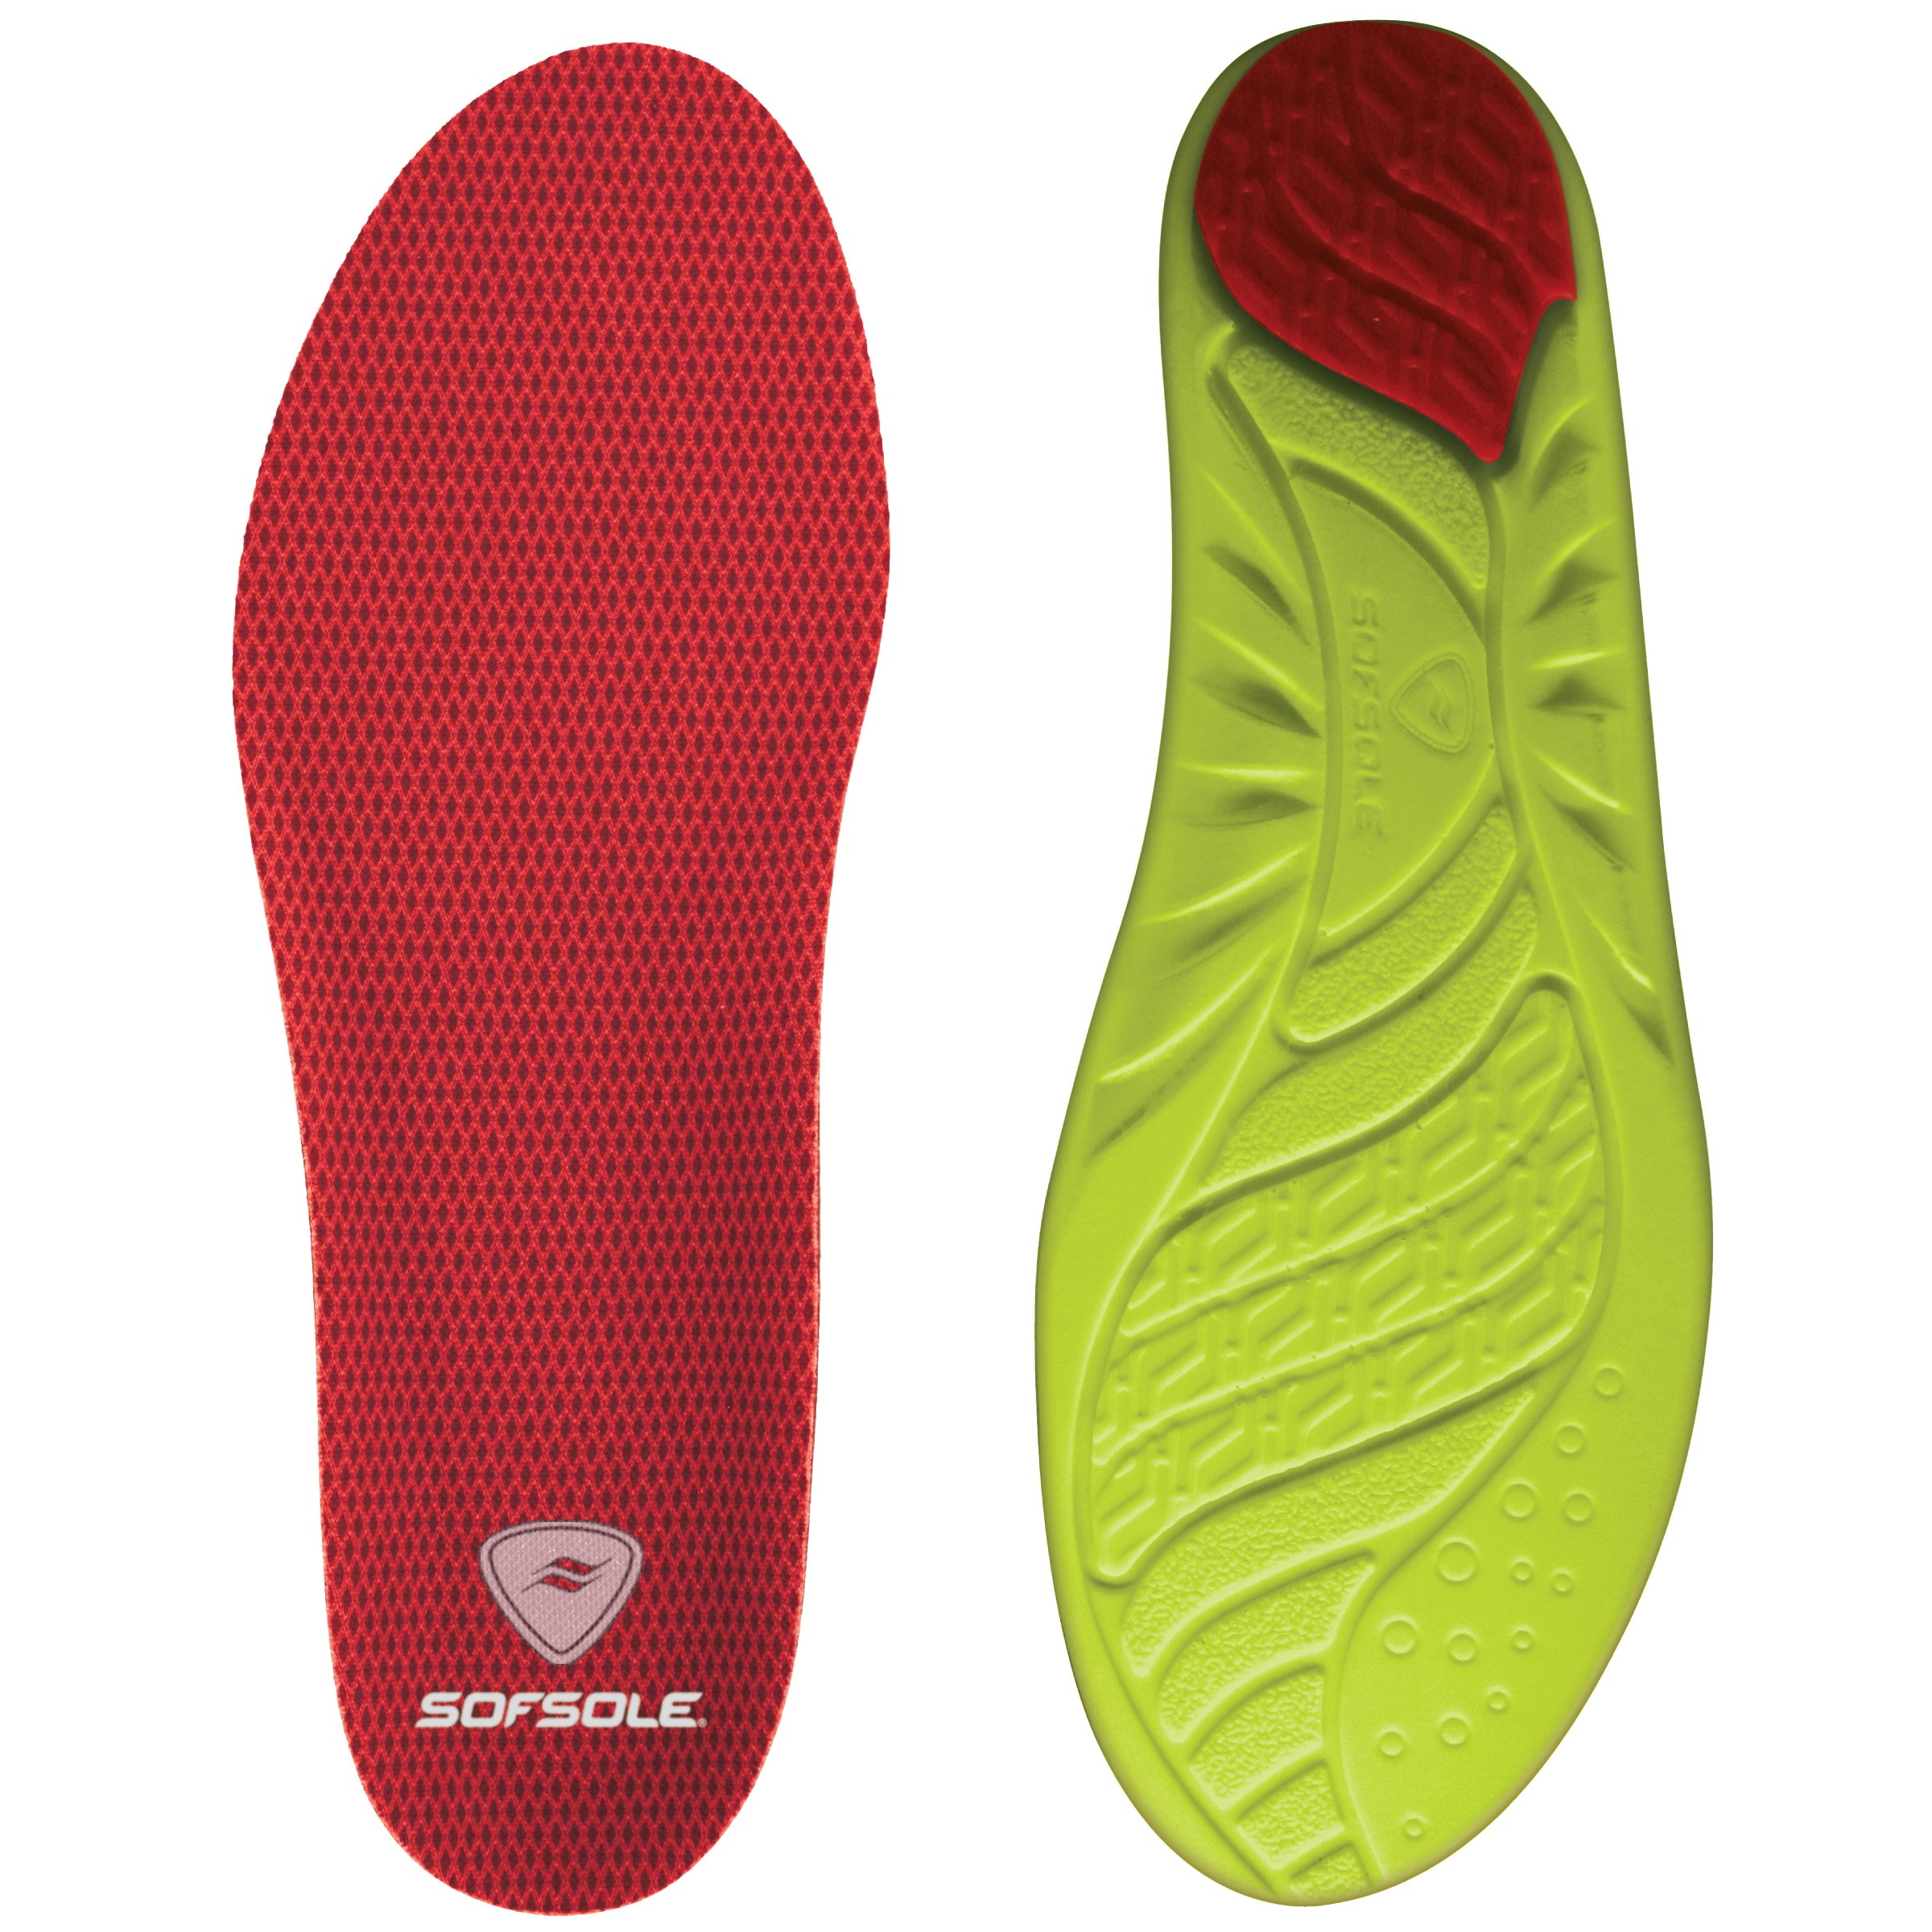 Sof Sole Women's Arch Full Length Comfort High Arch Shoe Insole, Women's Size 8-11 by Sof Sole